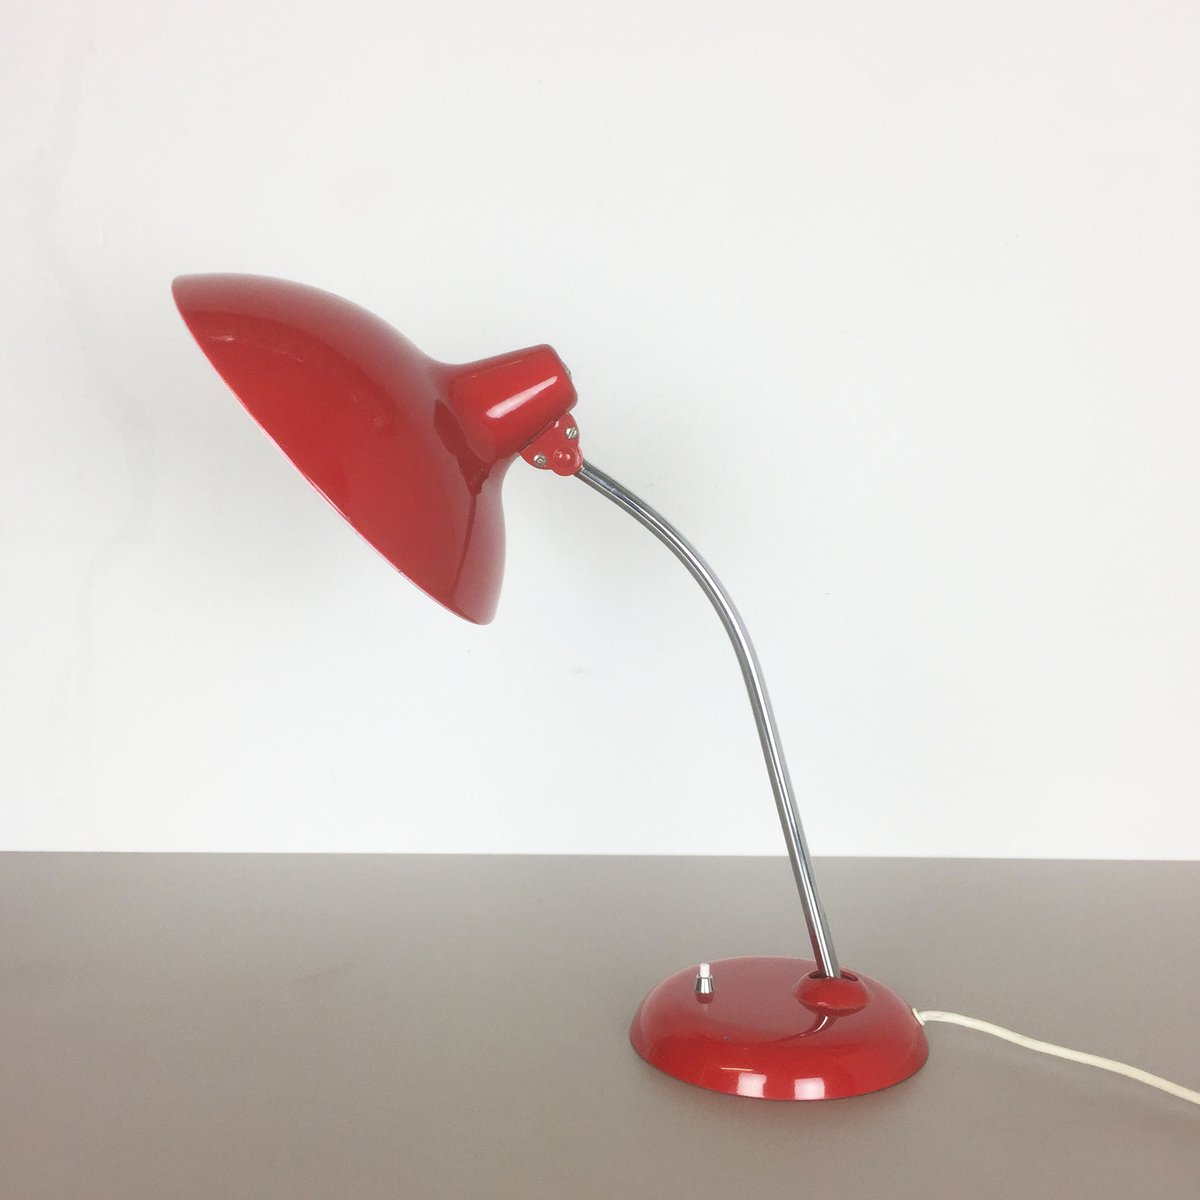 lampe de bureau 6786 rouge par christian dell pour kaiser idell allemagne 1960s en vente sur pamono. Black Bedroom Furniture Sets. Home Design Ideas